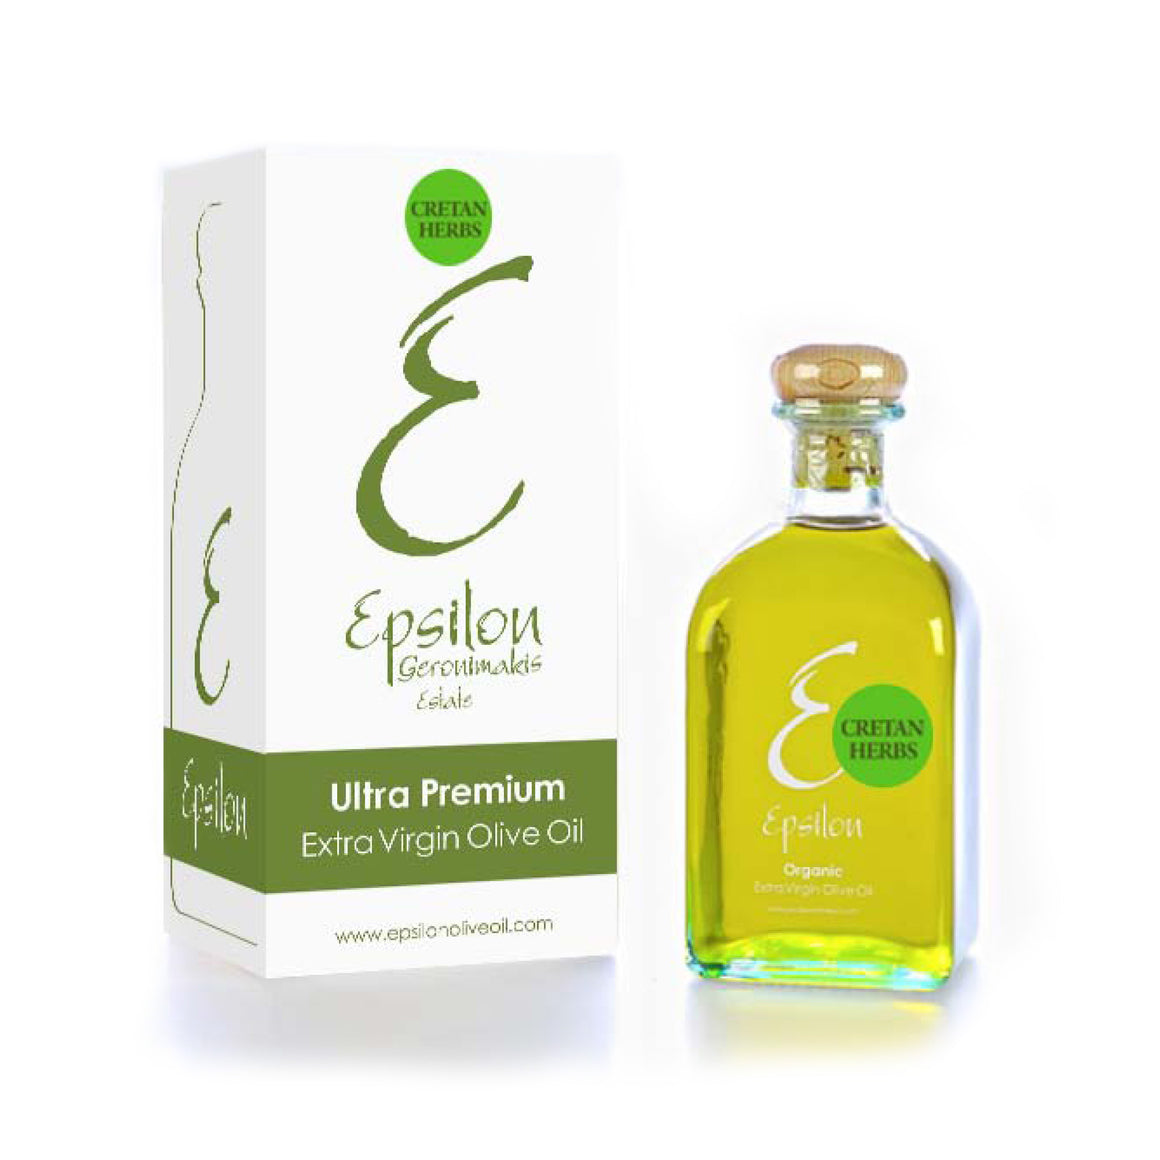 'Epsilon' Cretan Herbs Flavour Extra Virgin Olive Oil - 250ml